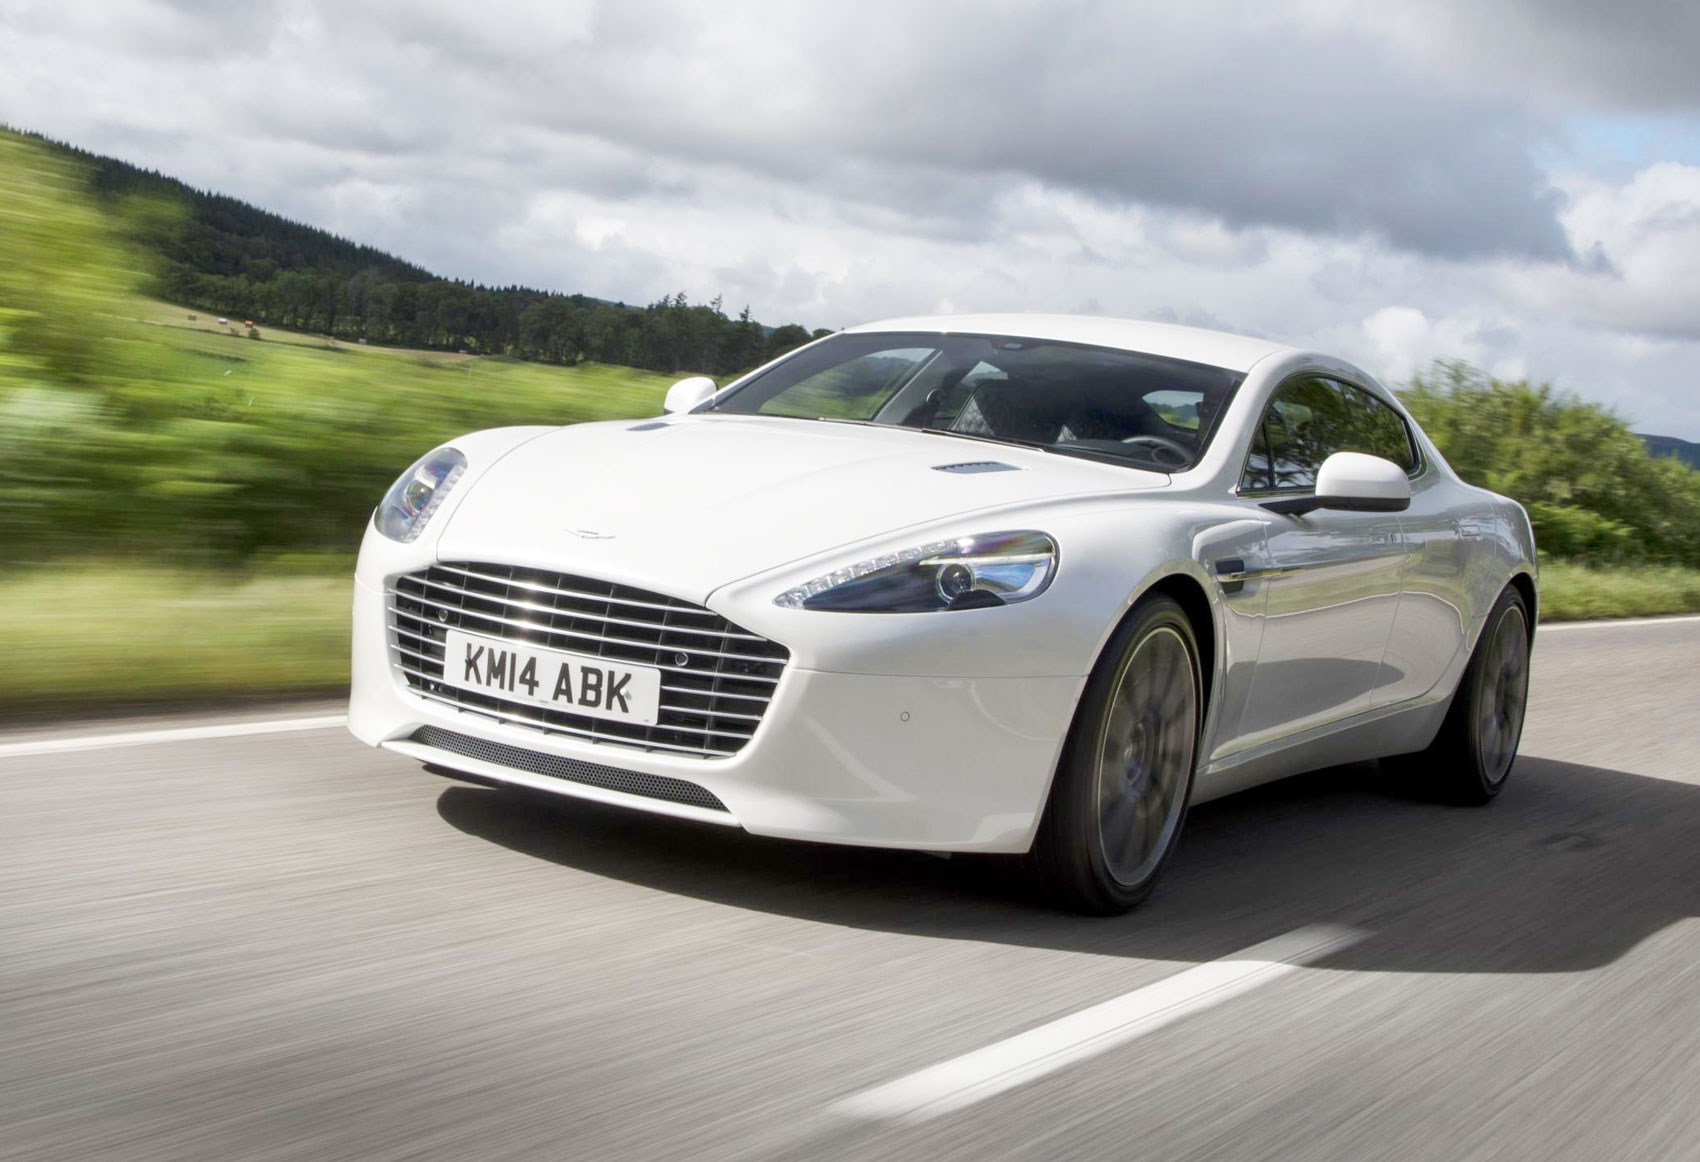 Amped-up Aston Martin Rapide Expected 'within Two Years